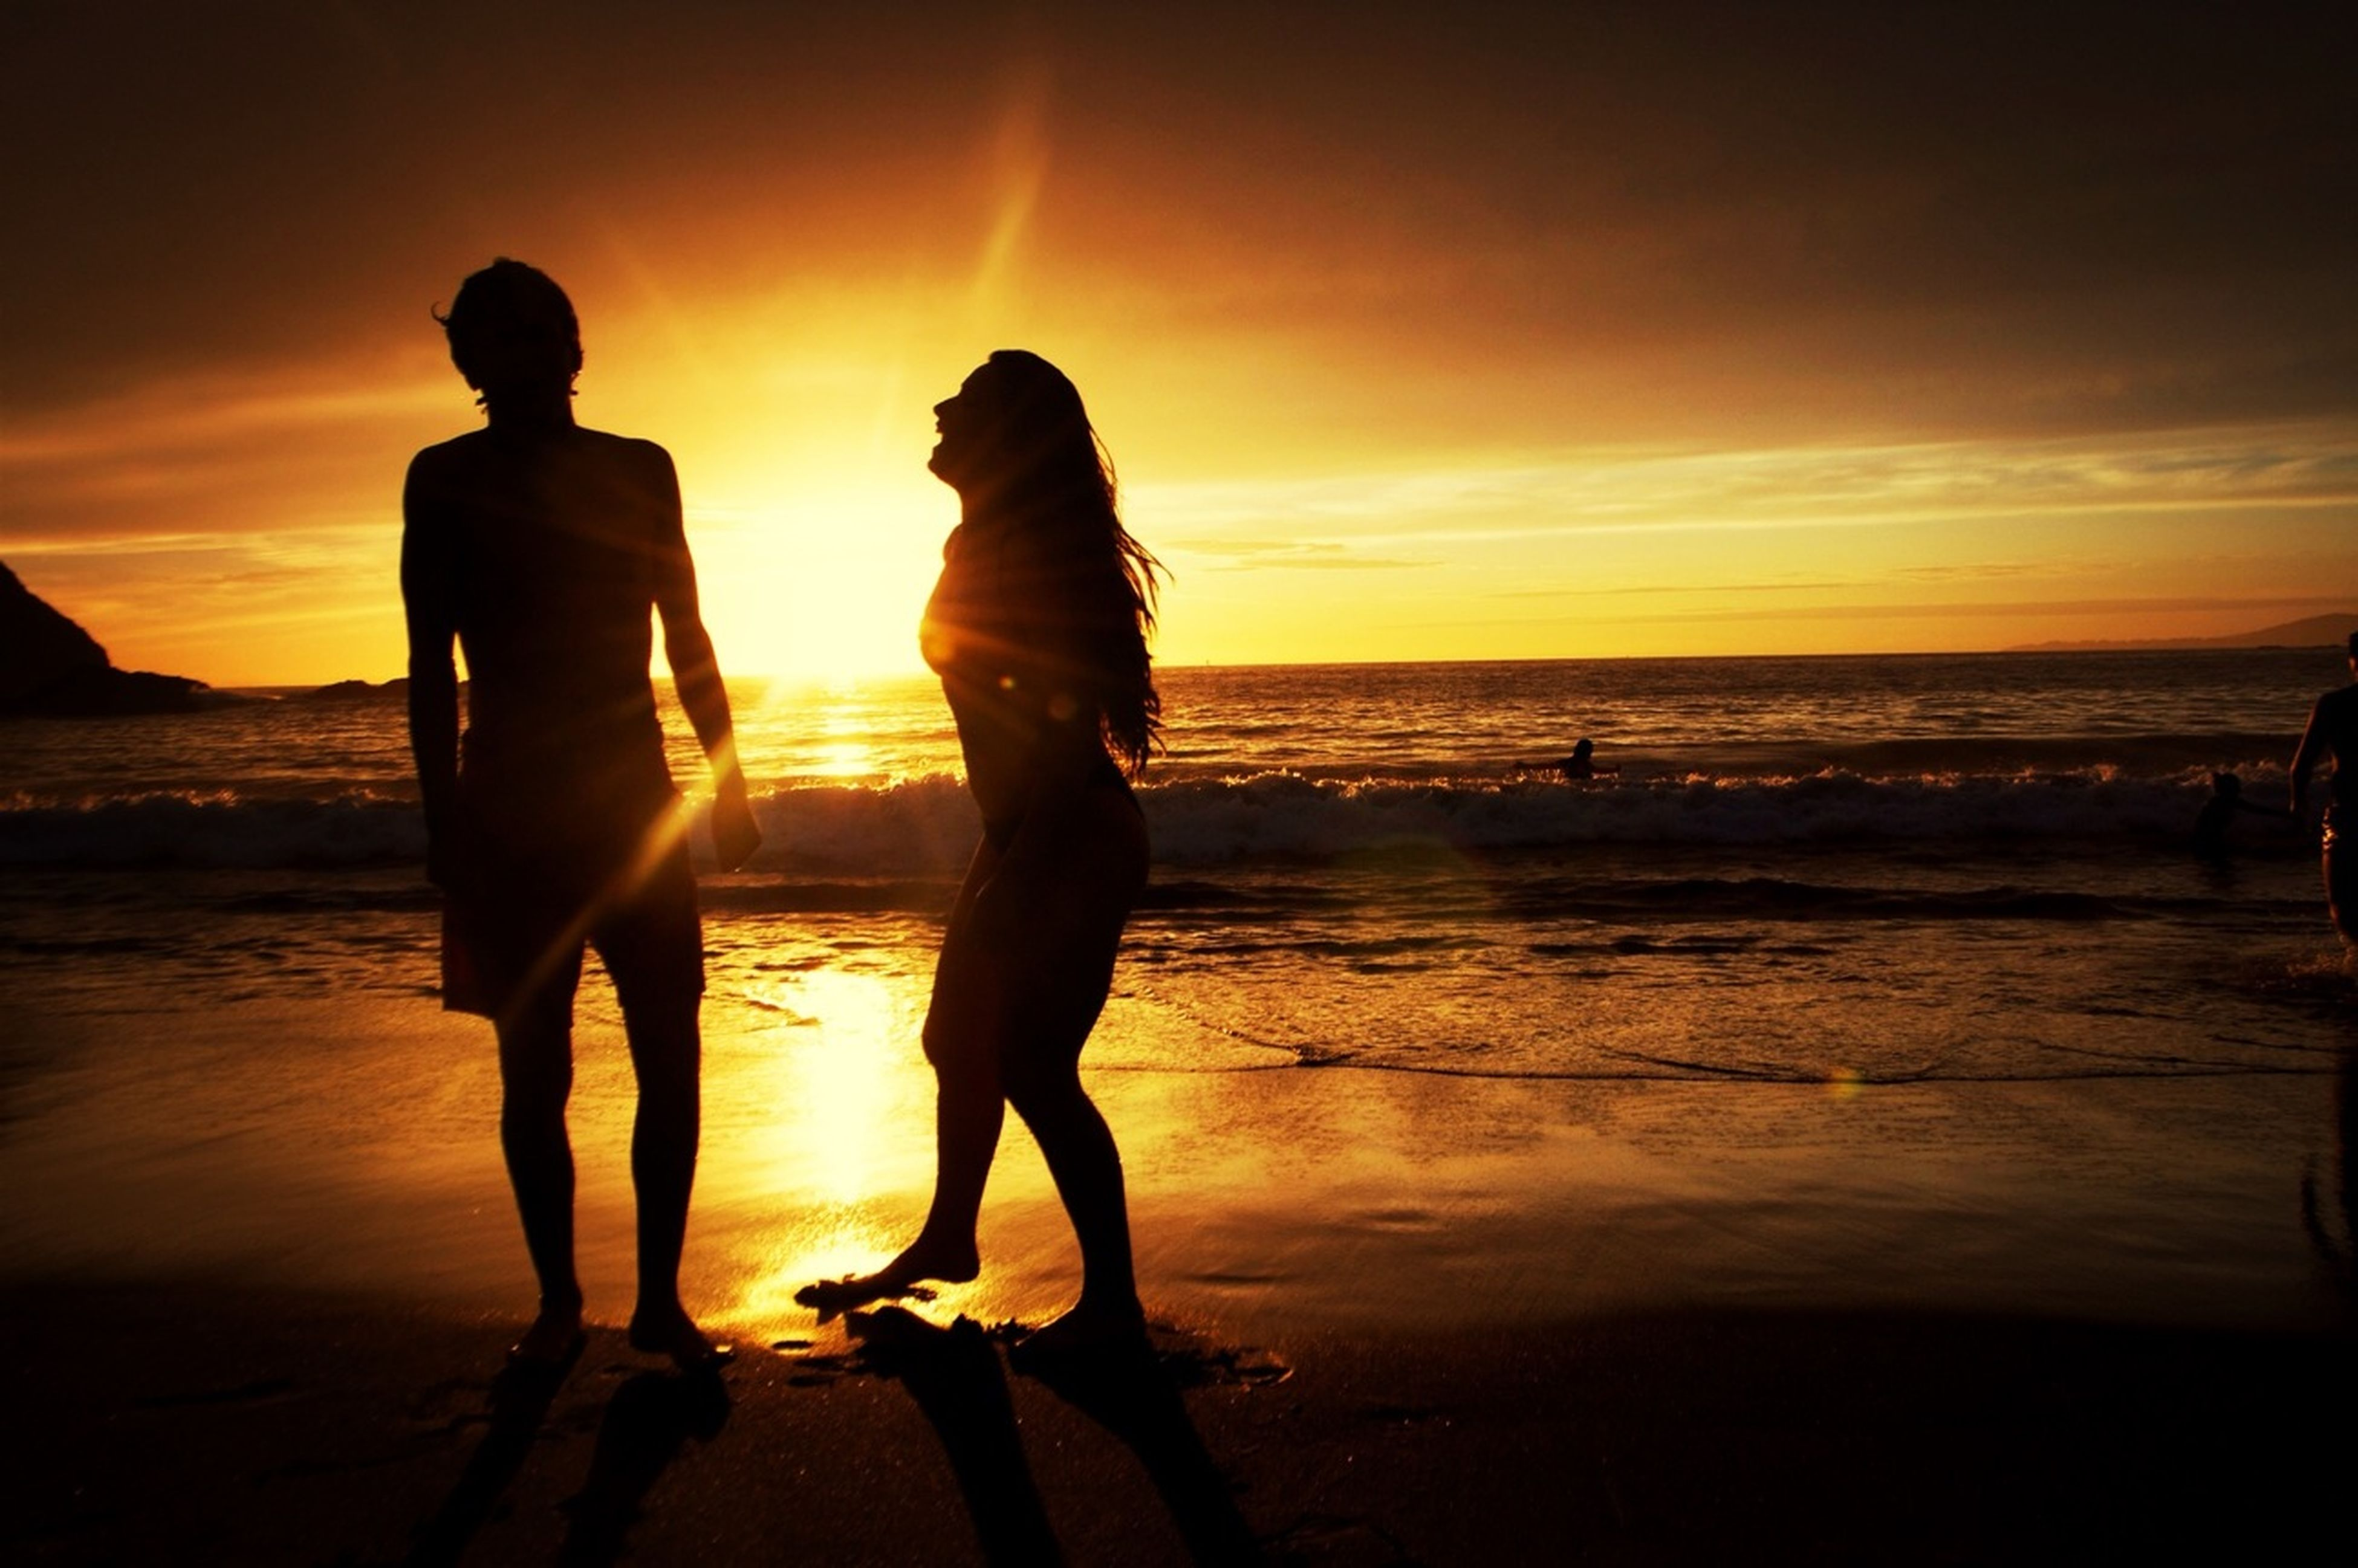 sunset, sea, beach, horizon over water, shore, water, sun, silhouette, orange color, lifestyles, sky, leisure activity, standing, scenics, beauty in nature, full length, person, sand, vacations